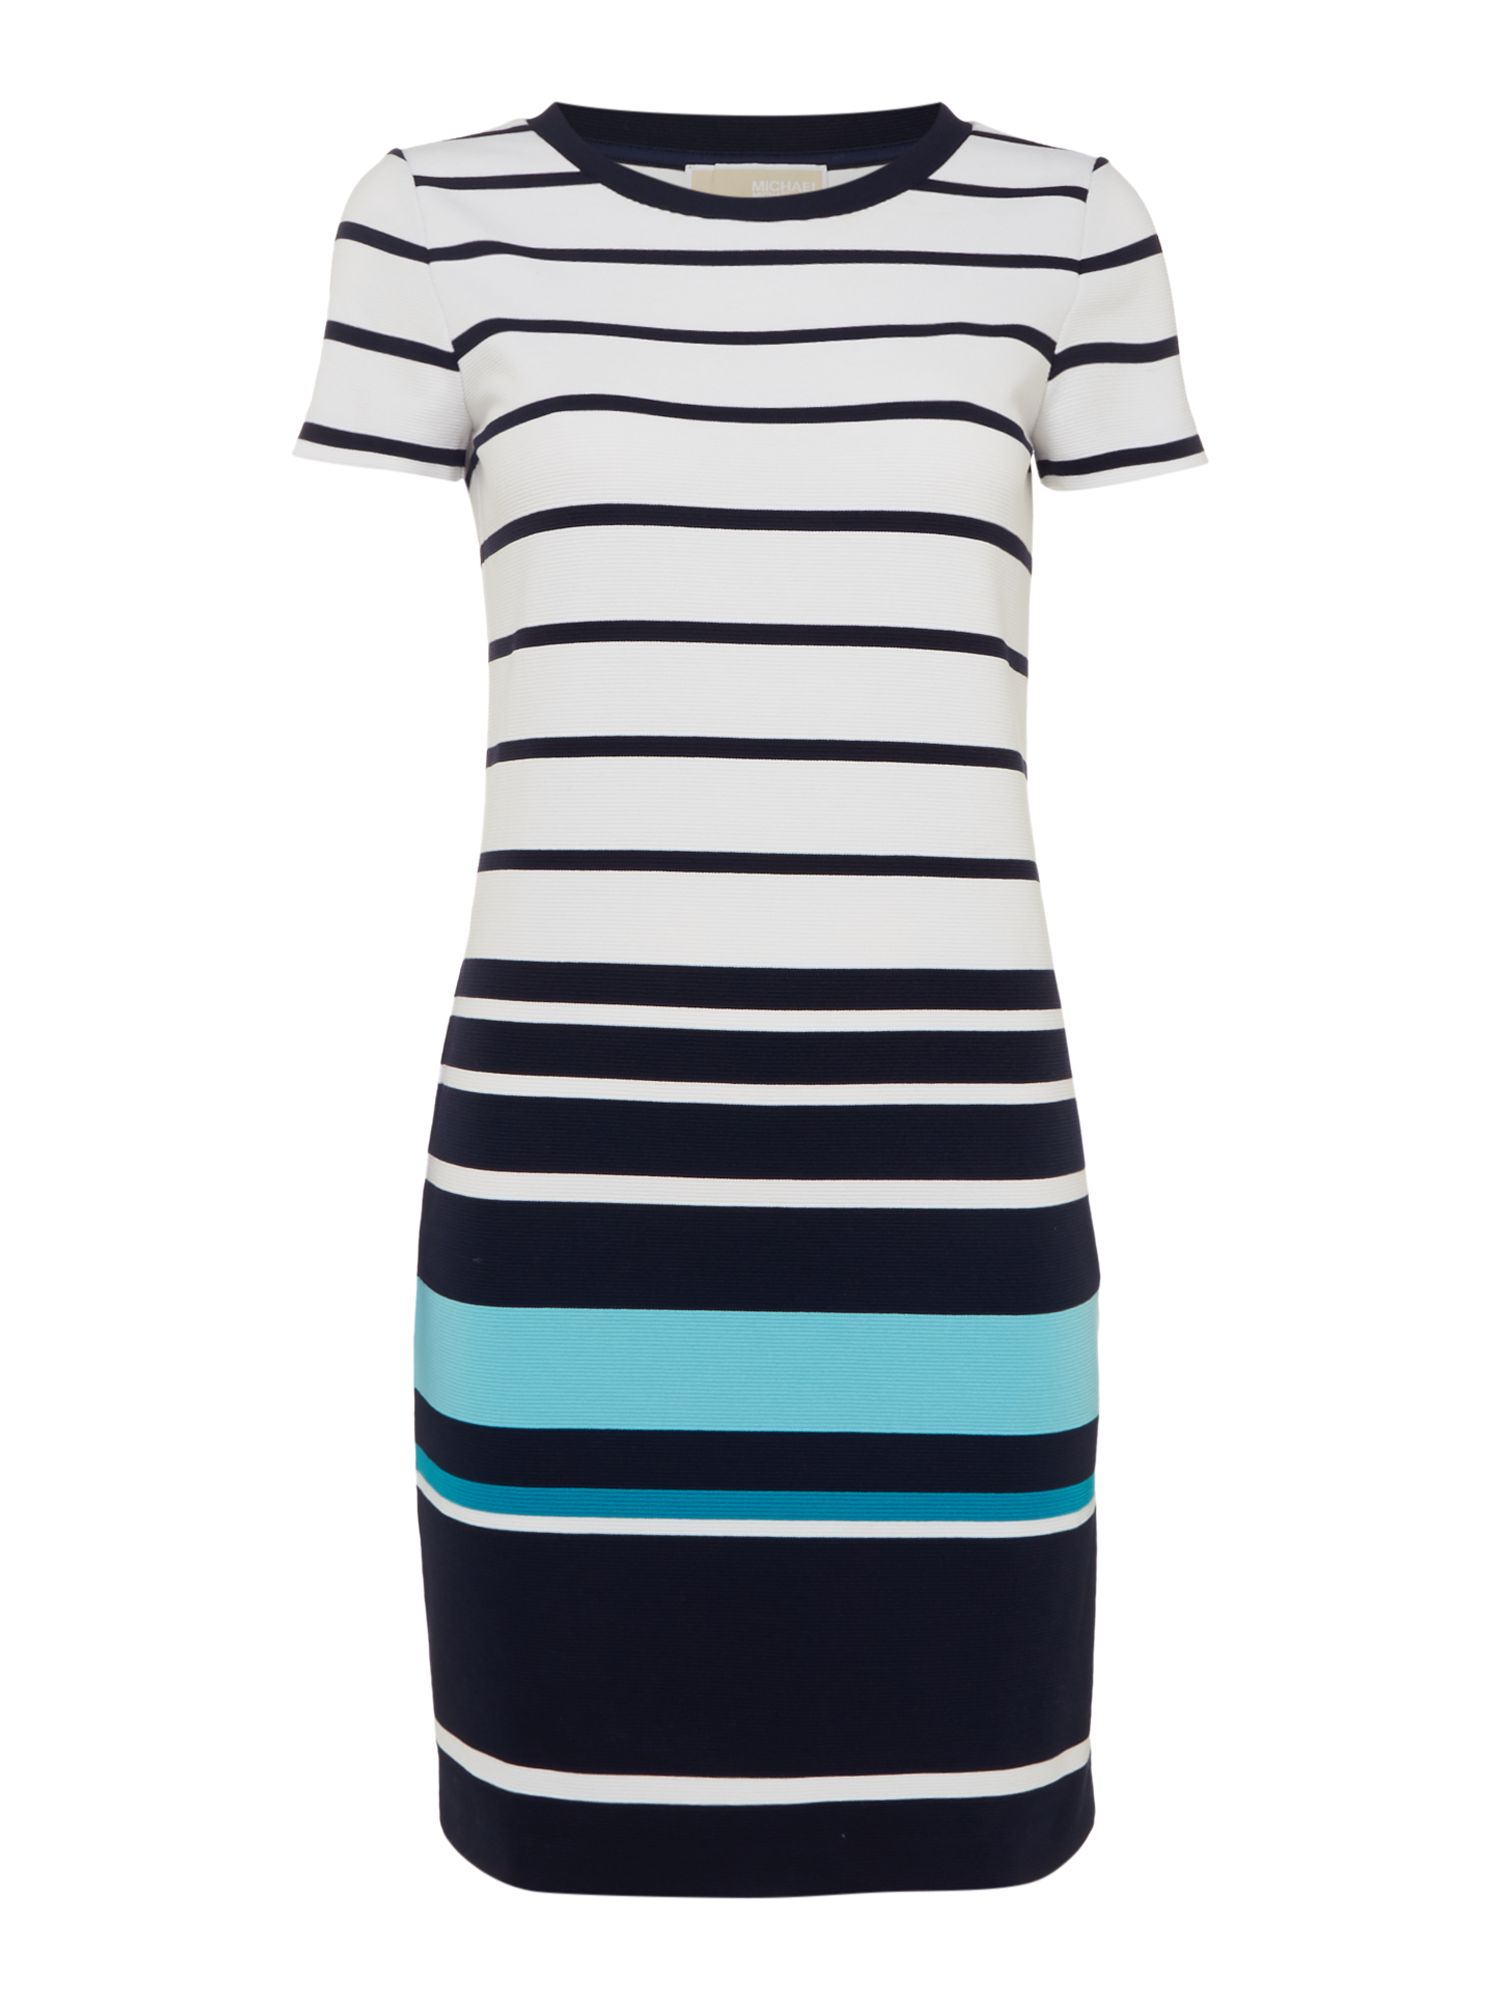 Michael Kors Short sleeve t-shirt style striped dress, Peacock Blue